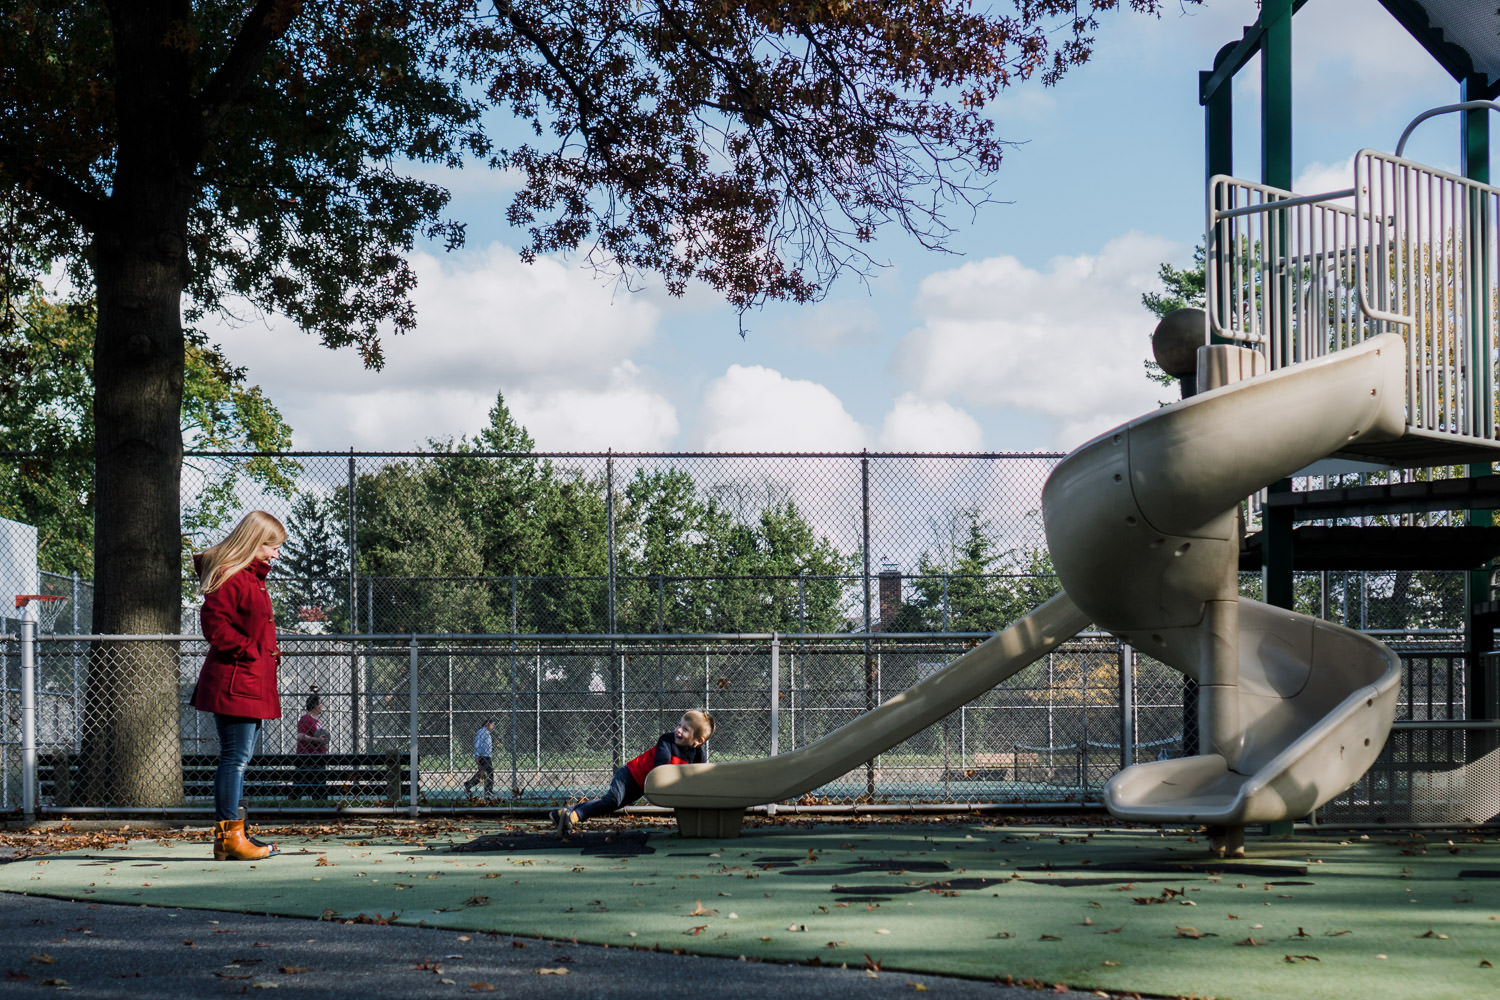 A mother watches her son come down the slide at the playground.